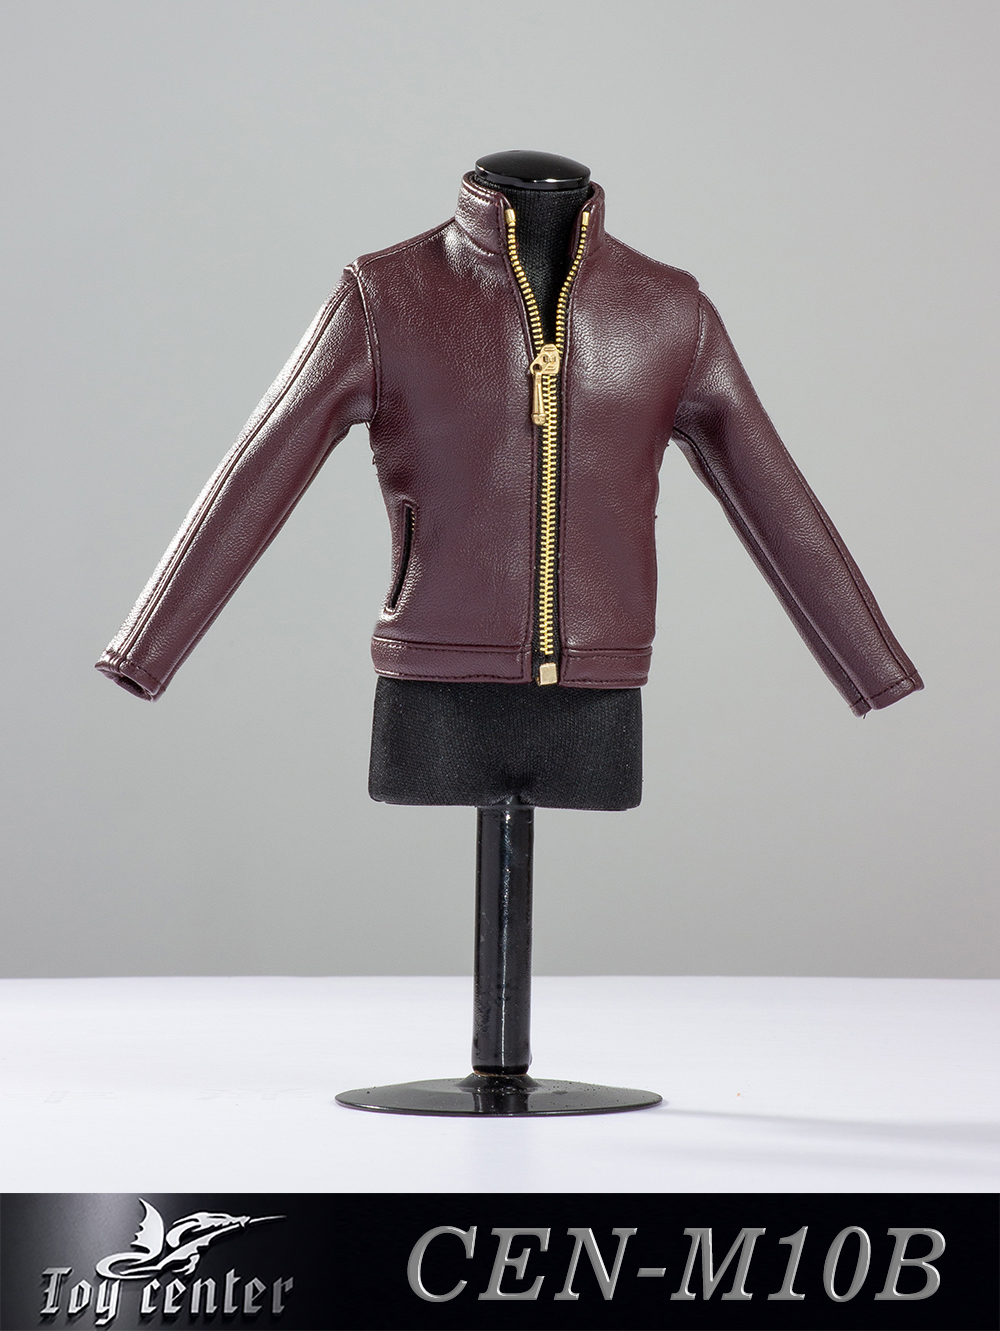 clothes - NEW PRODUCT: Toy center: 1/6 US team trend leather suit - a total of three colors A / B / C (CEN-M10 #) 13141211